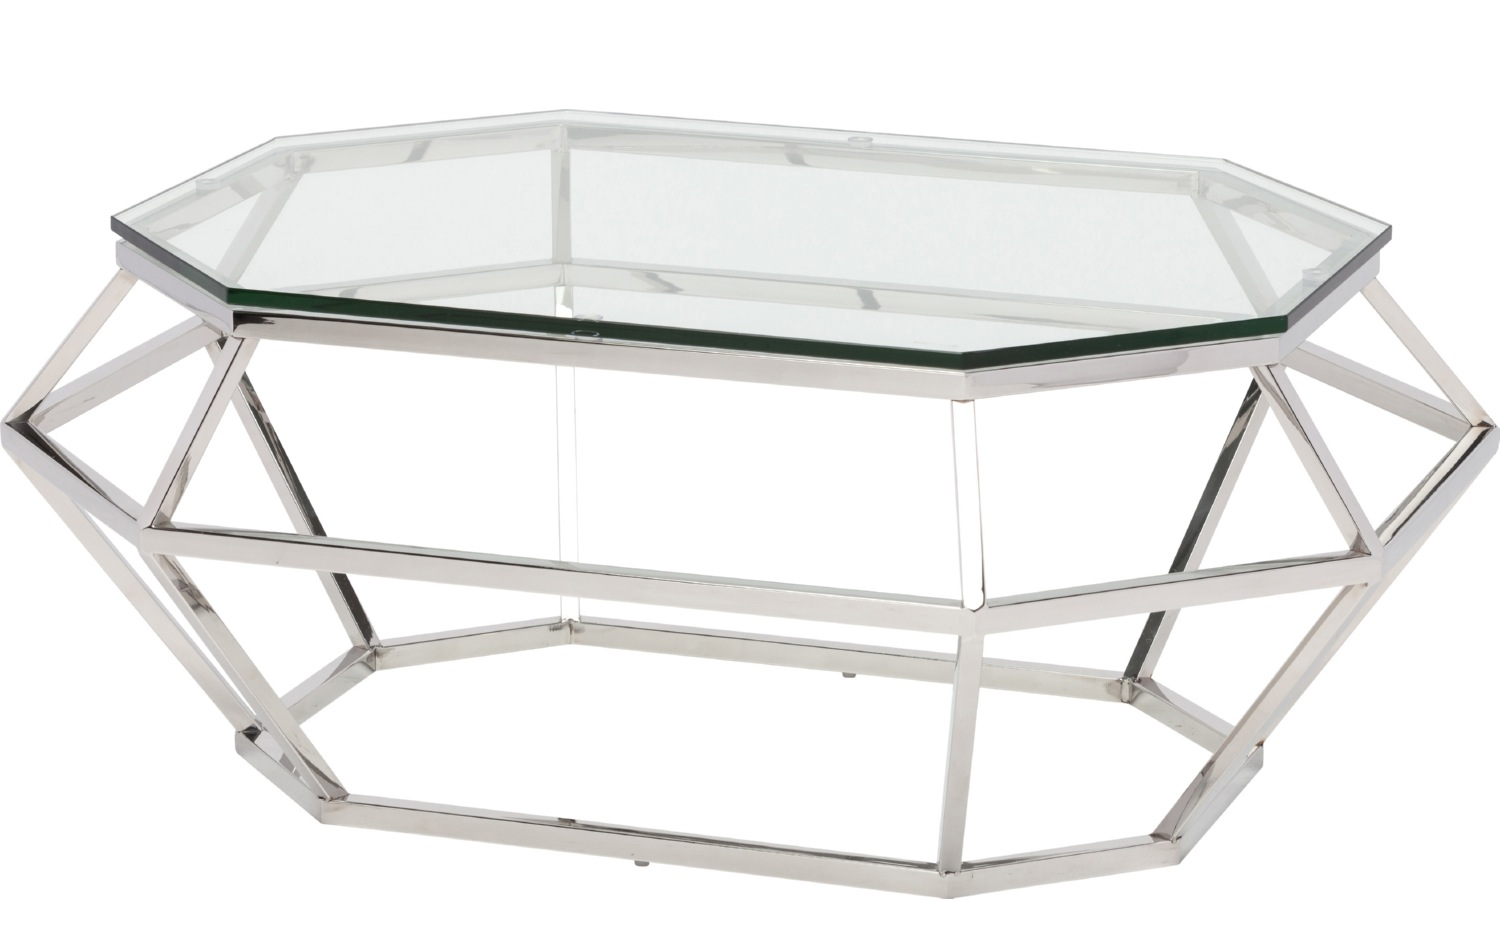 diamond-rectangular-coffee-table-stainless-steel.jpg